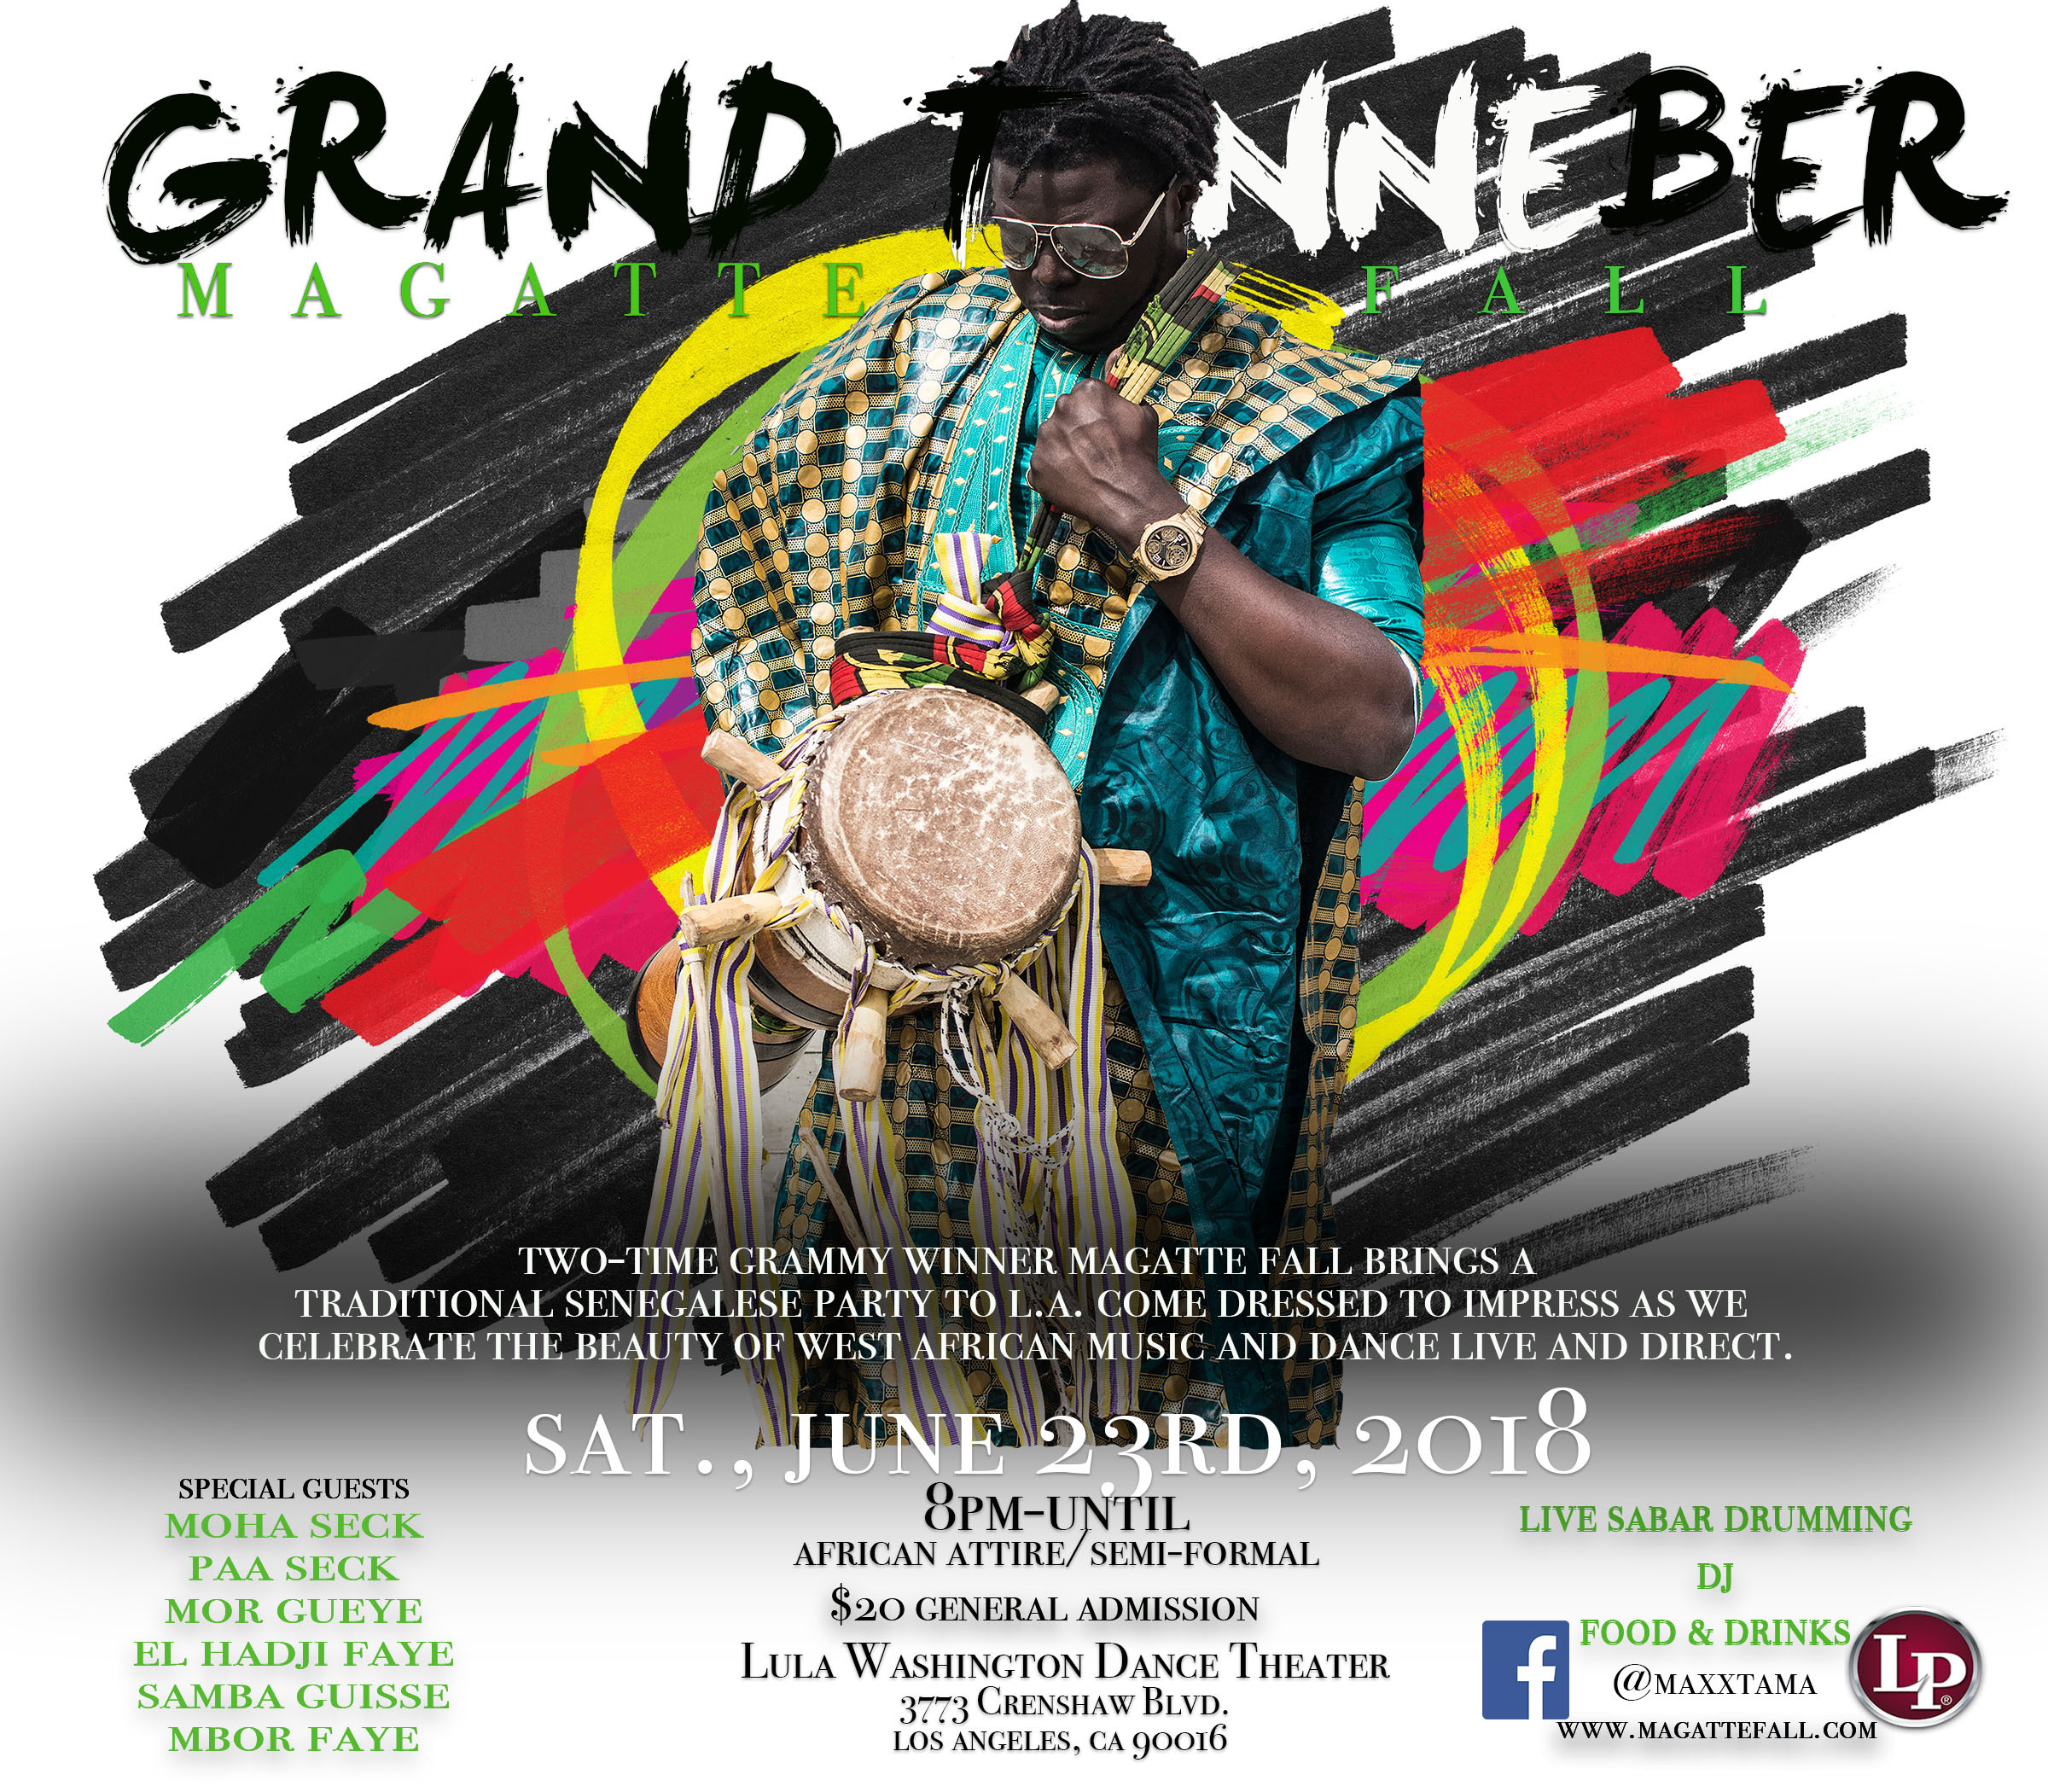 GRAND Tanneber '18 - 2-time Grammy Winner and credited percussionist for